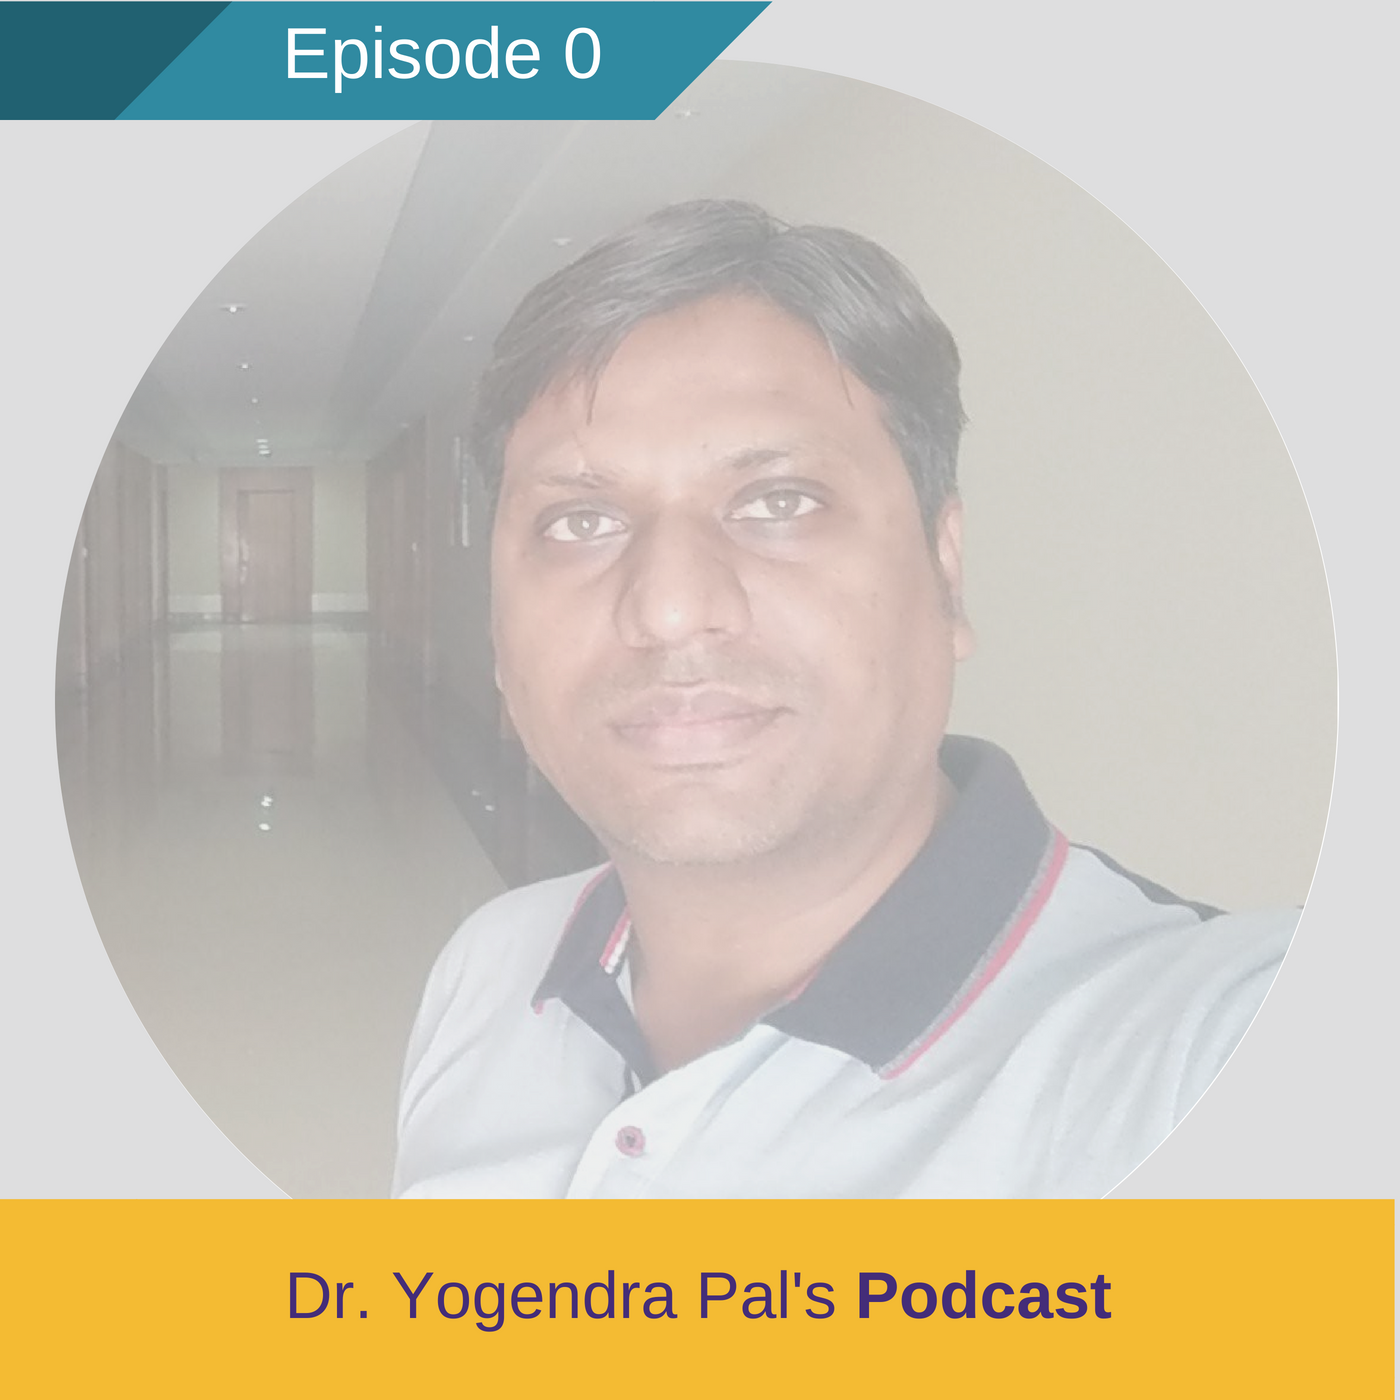 Introduction to Dr. Yogendra Pal Podcast